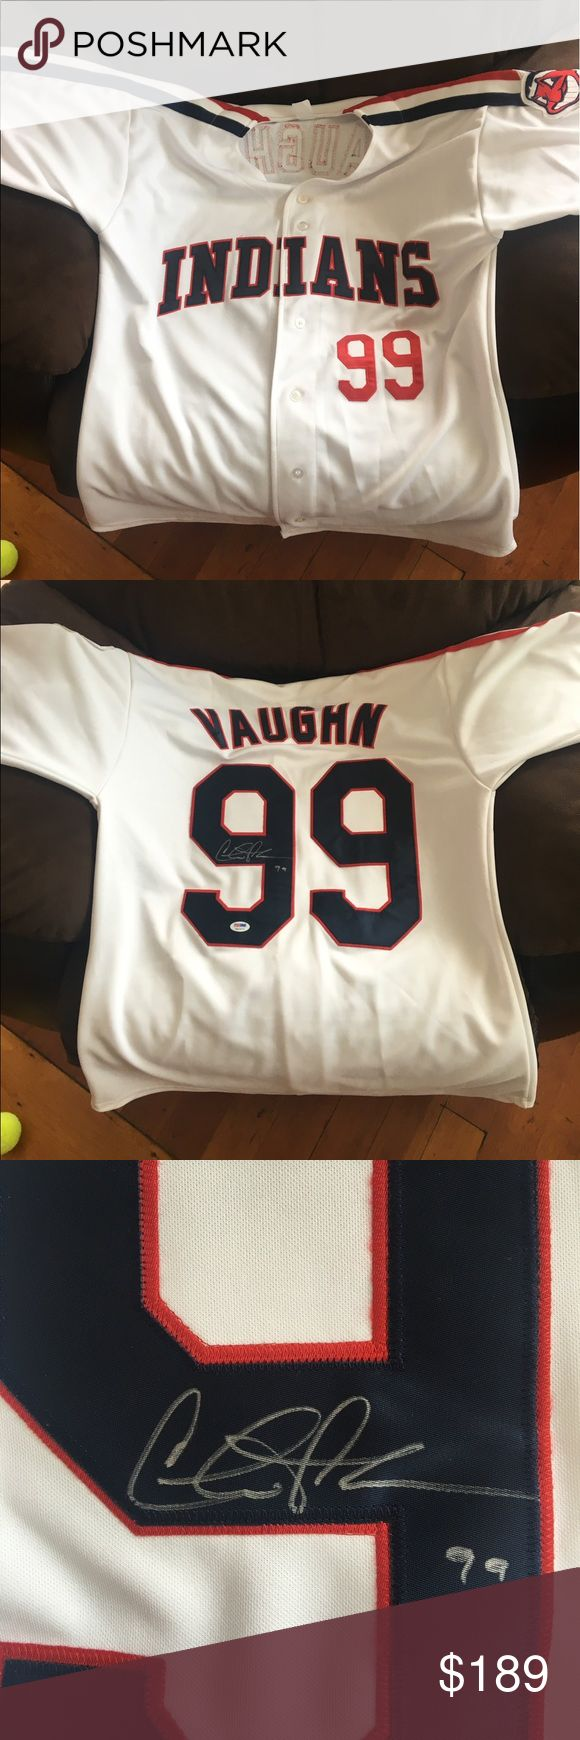 Indians | Autographed by Charlie Sheen Who's seen the movie Major League?? You can own a Ricky 'Wild Thing' Vaughn jersey number 99 signed by Charlie Sheen! How awesome is that?! Autograph is certified with papers. Jersey is authentic 2017 Gold Rush. Shirts